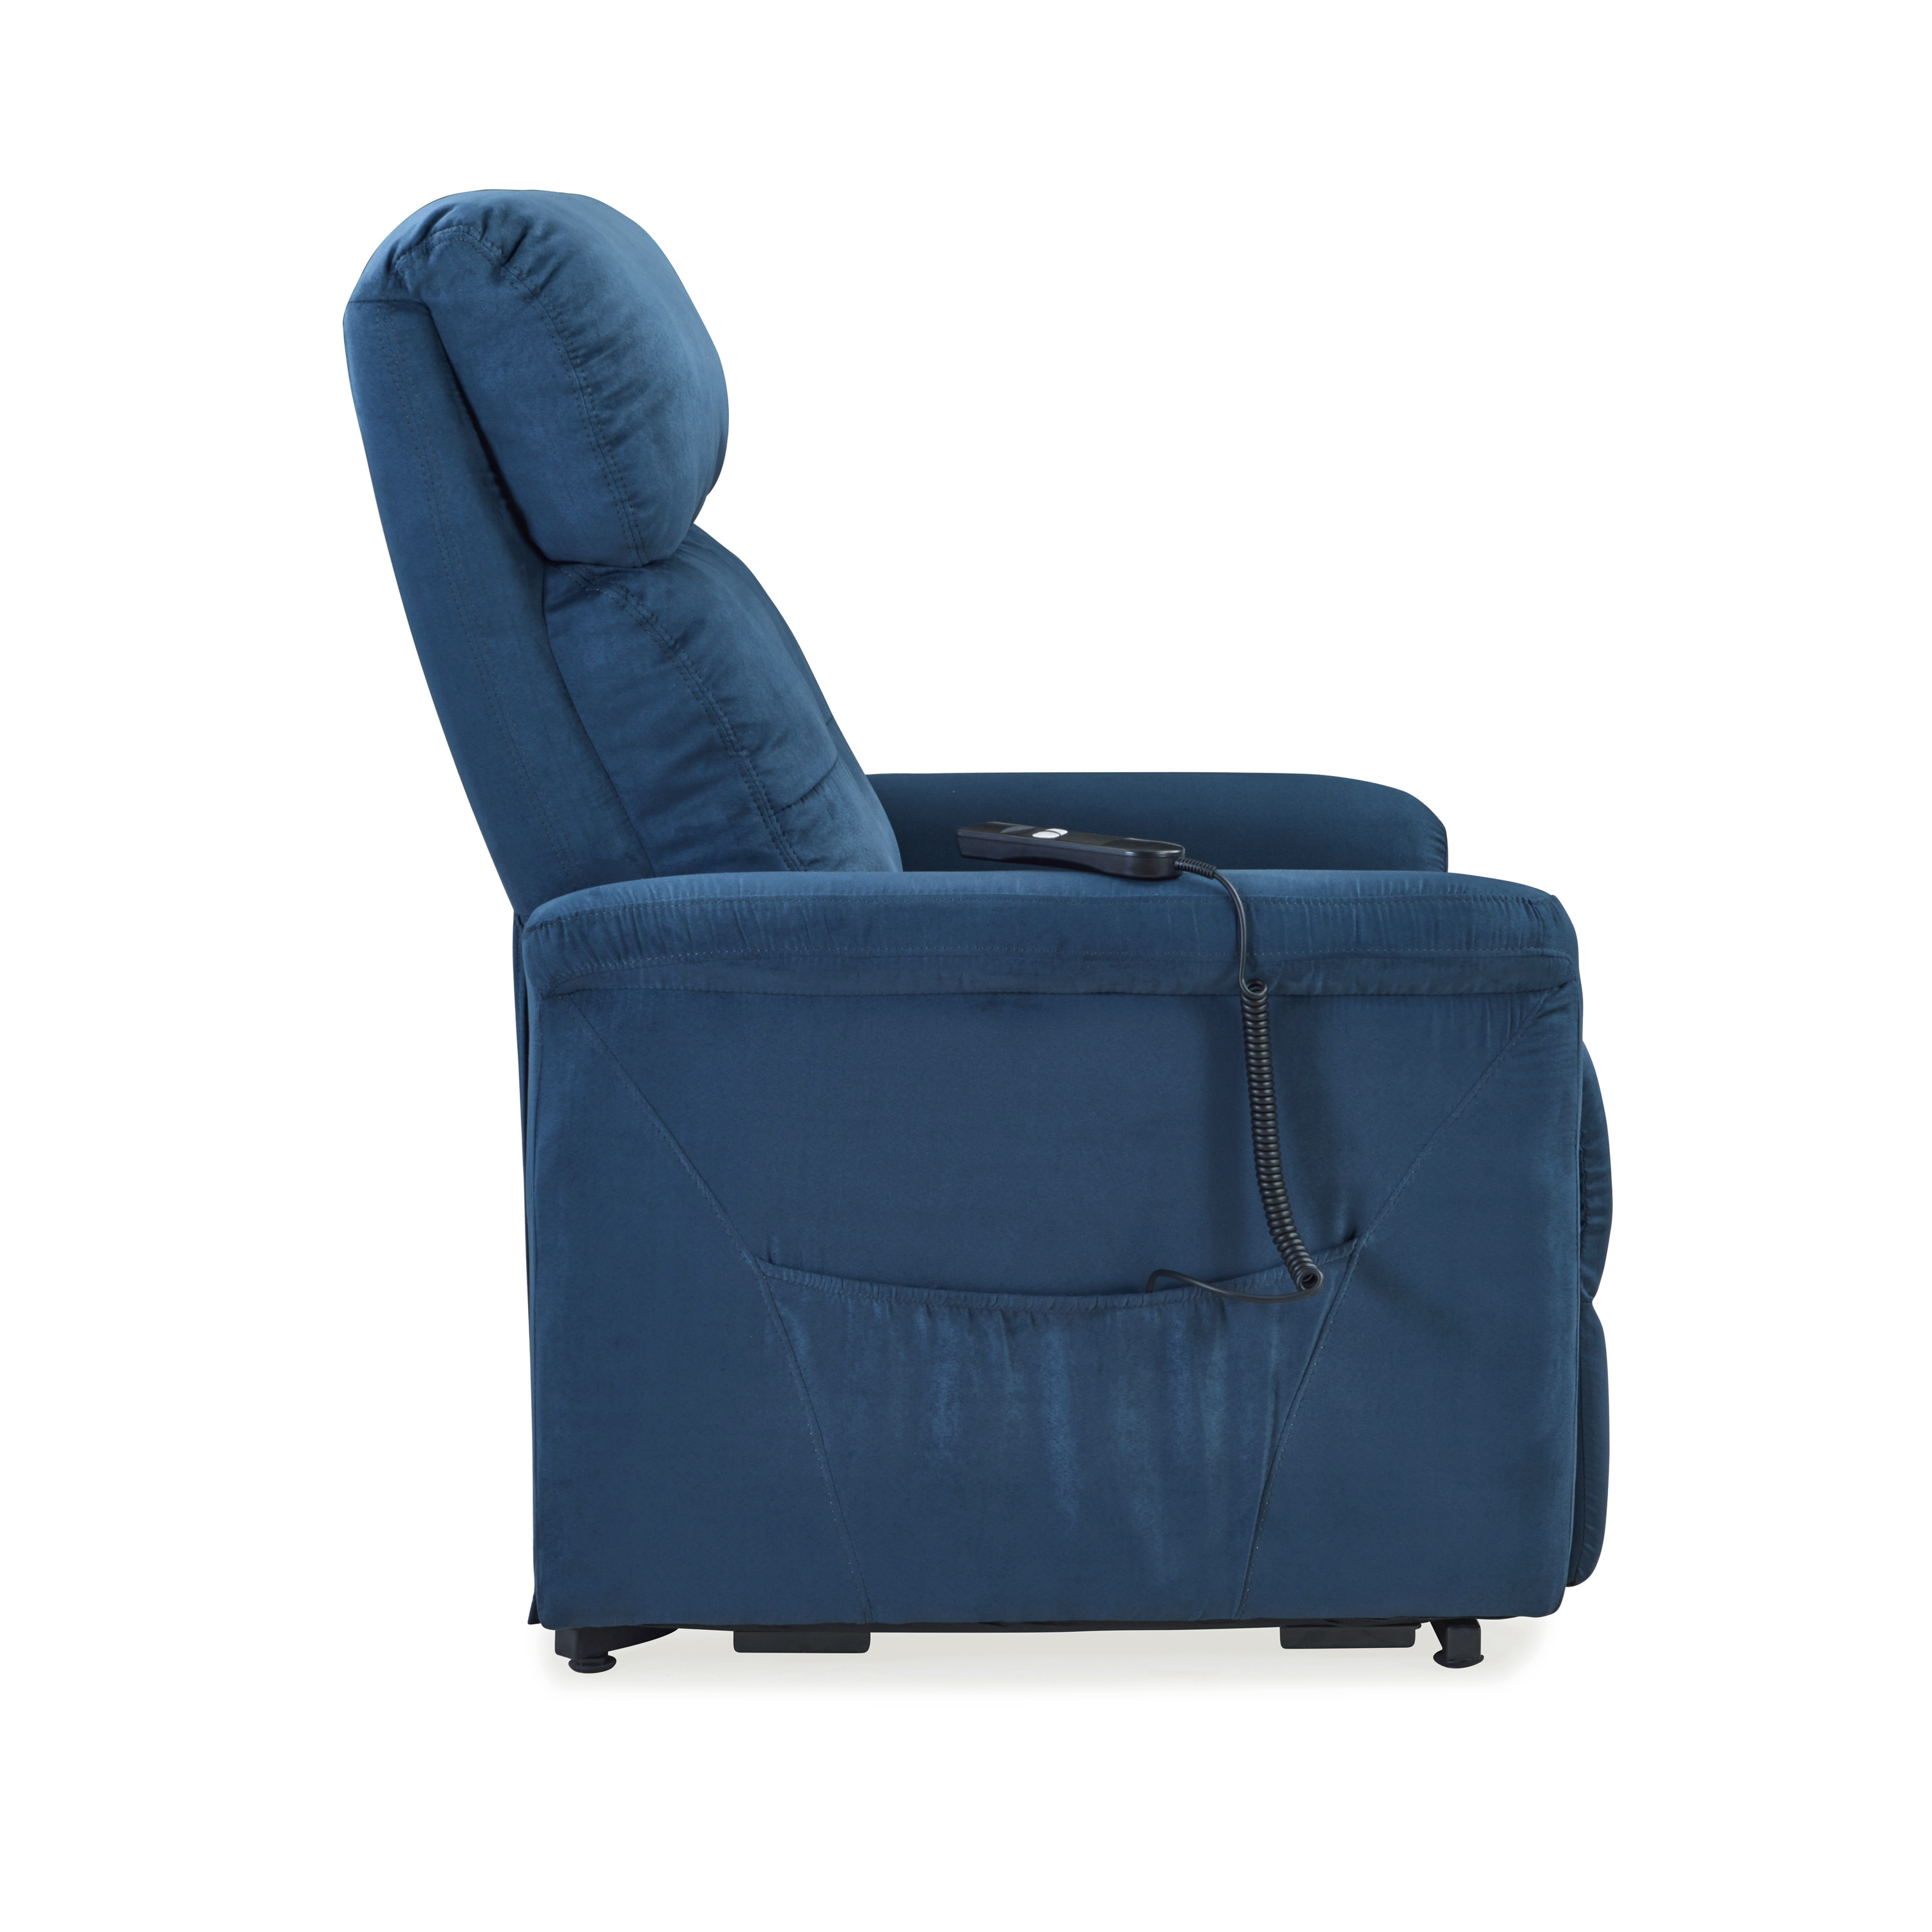 recliners img norway power chairs relaxer number products with recline prince recliner lift item